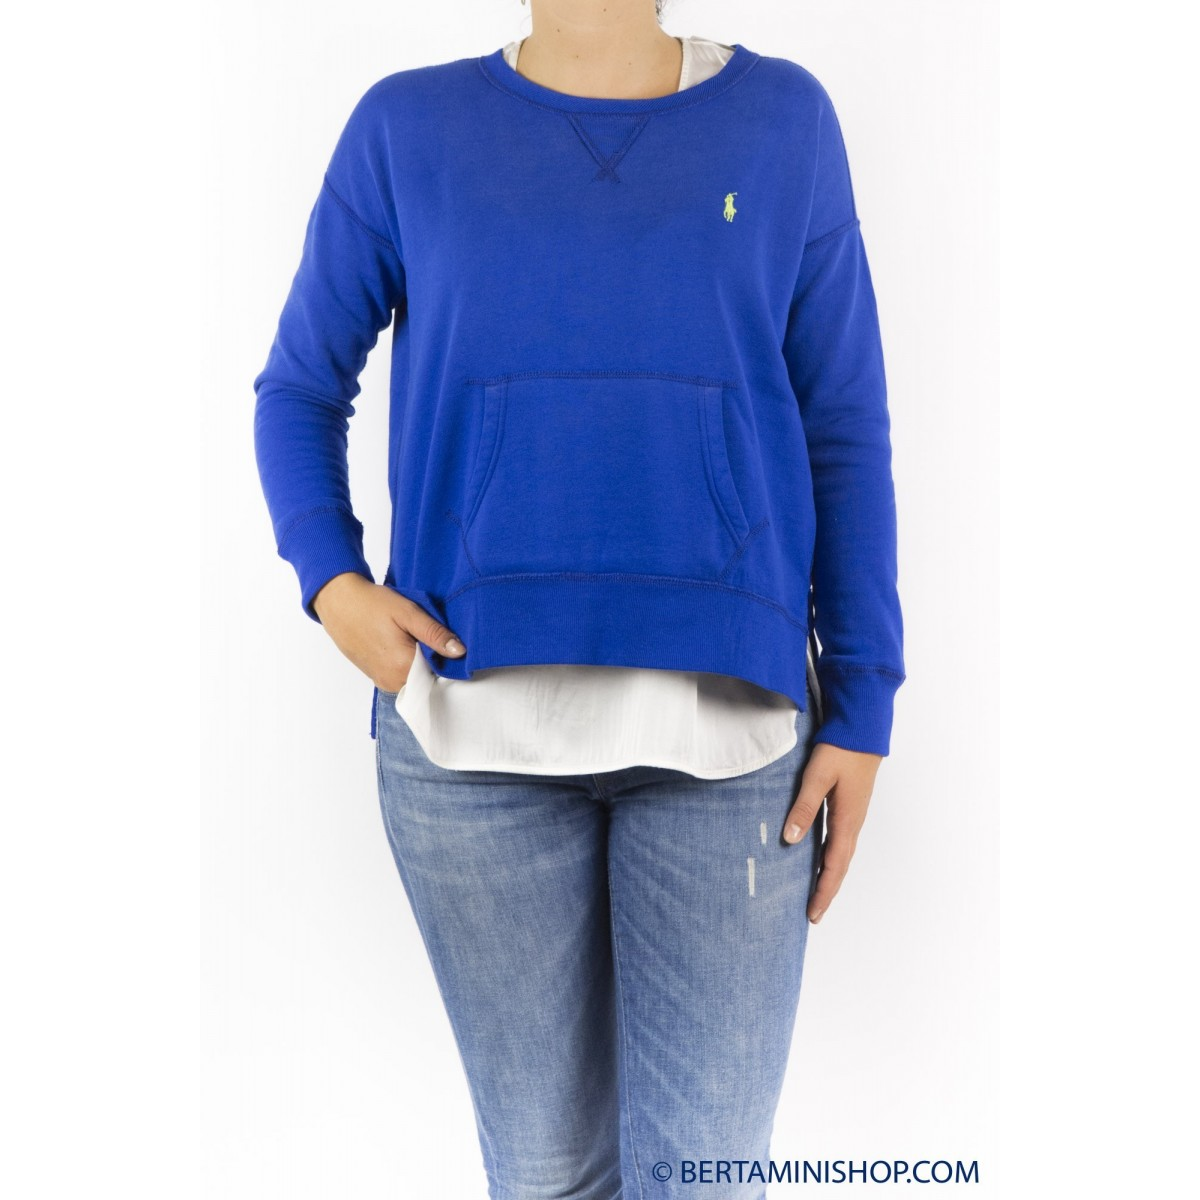 Jumper Ralph Lauren Woman - V38Id3D0Bd3Lo B4D40 - Royal